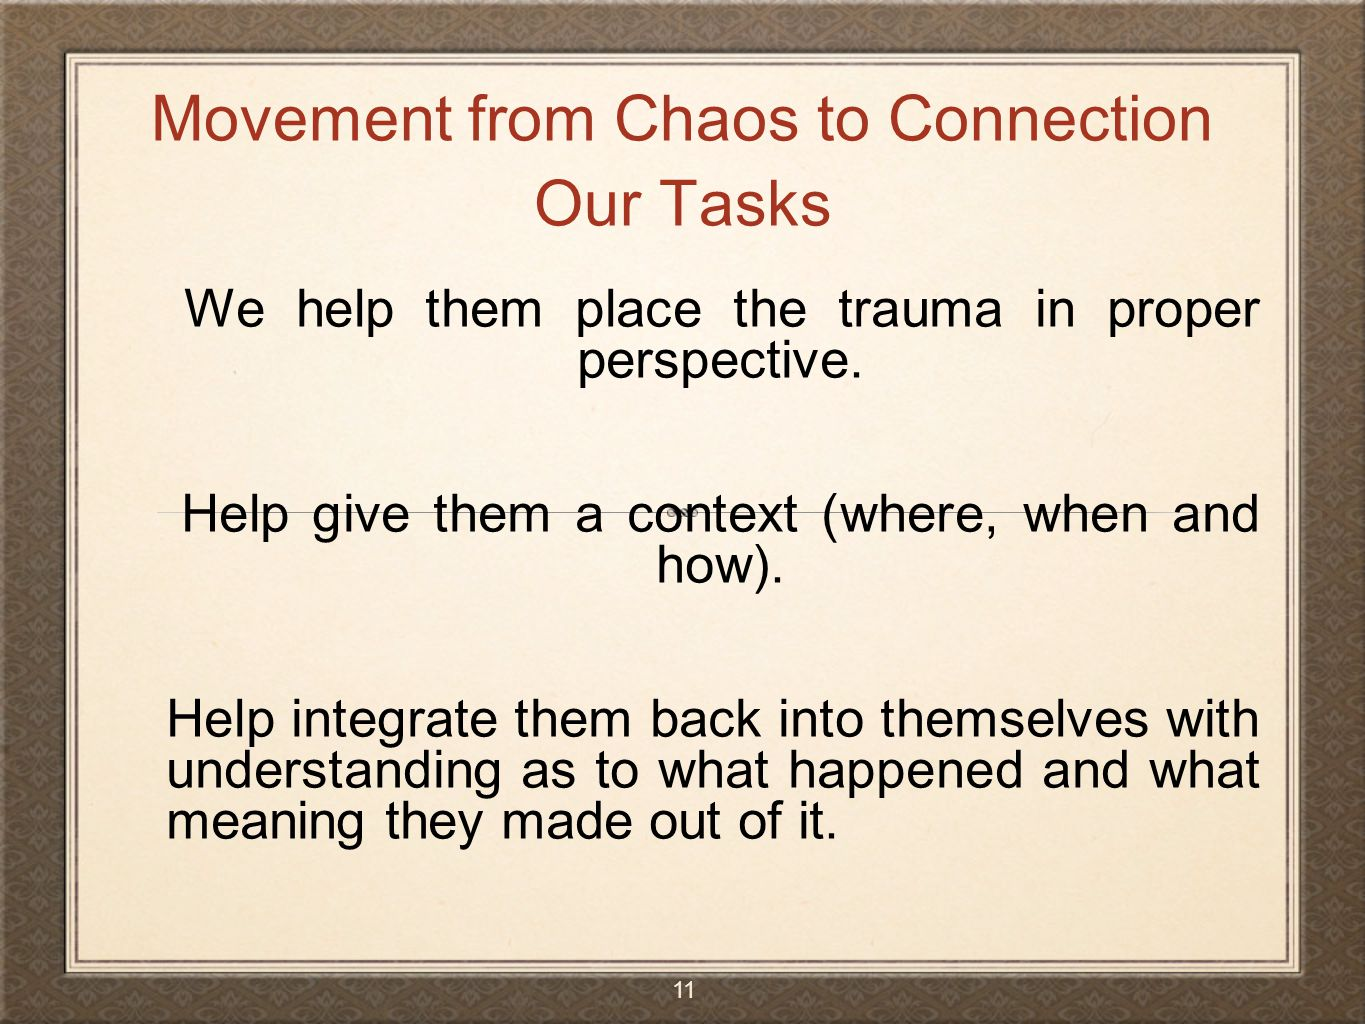 Movement from Chaos to Connection Our Tasks